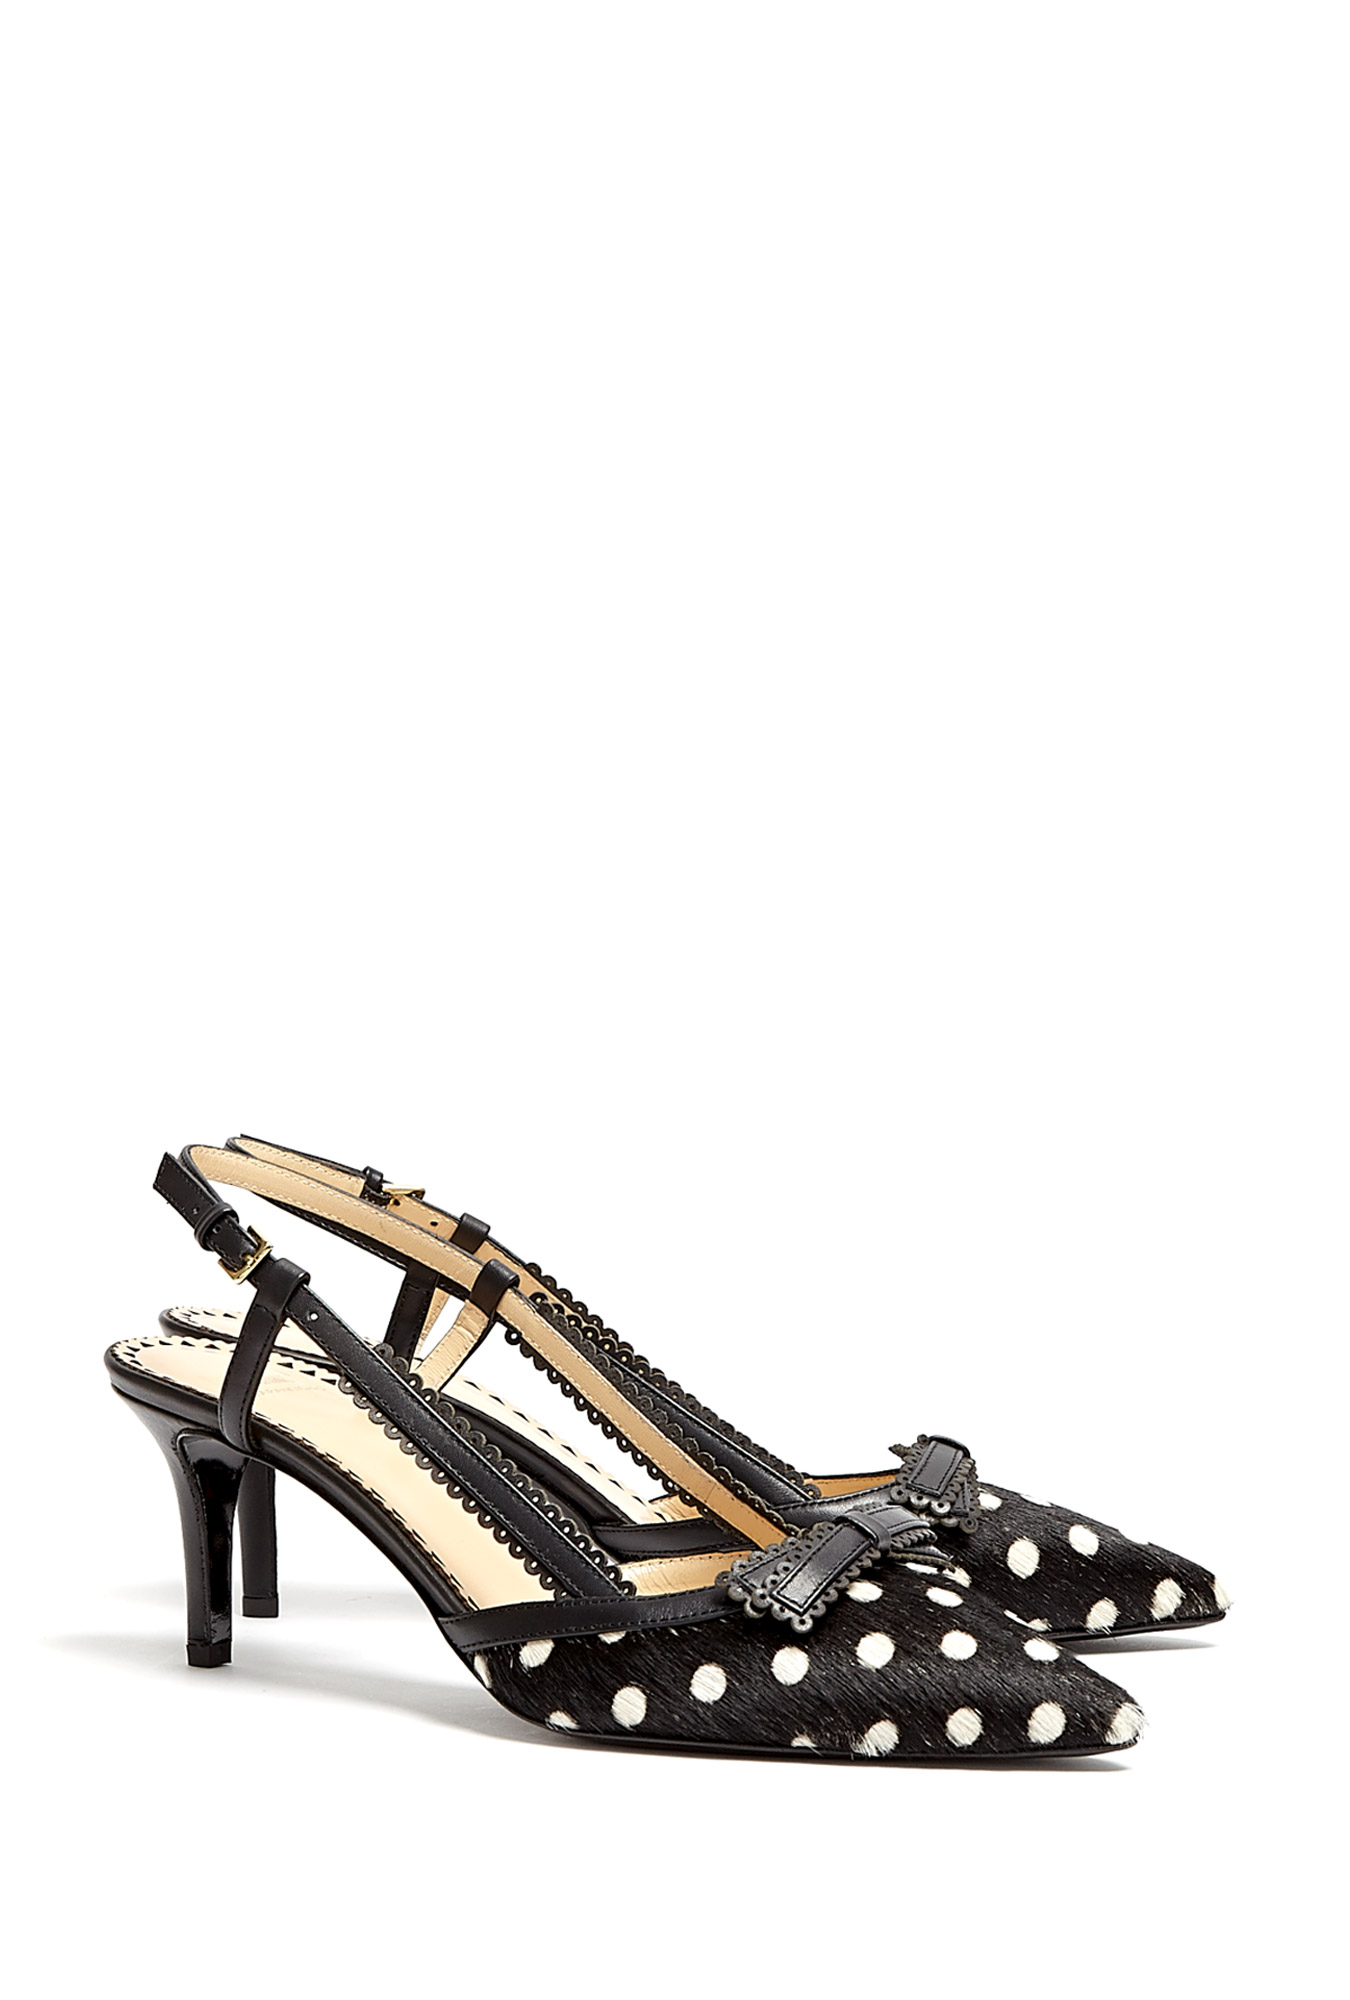 Moschino Cheap And Chic Shoes